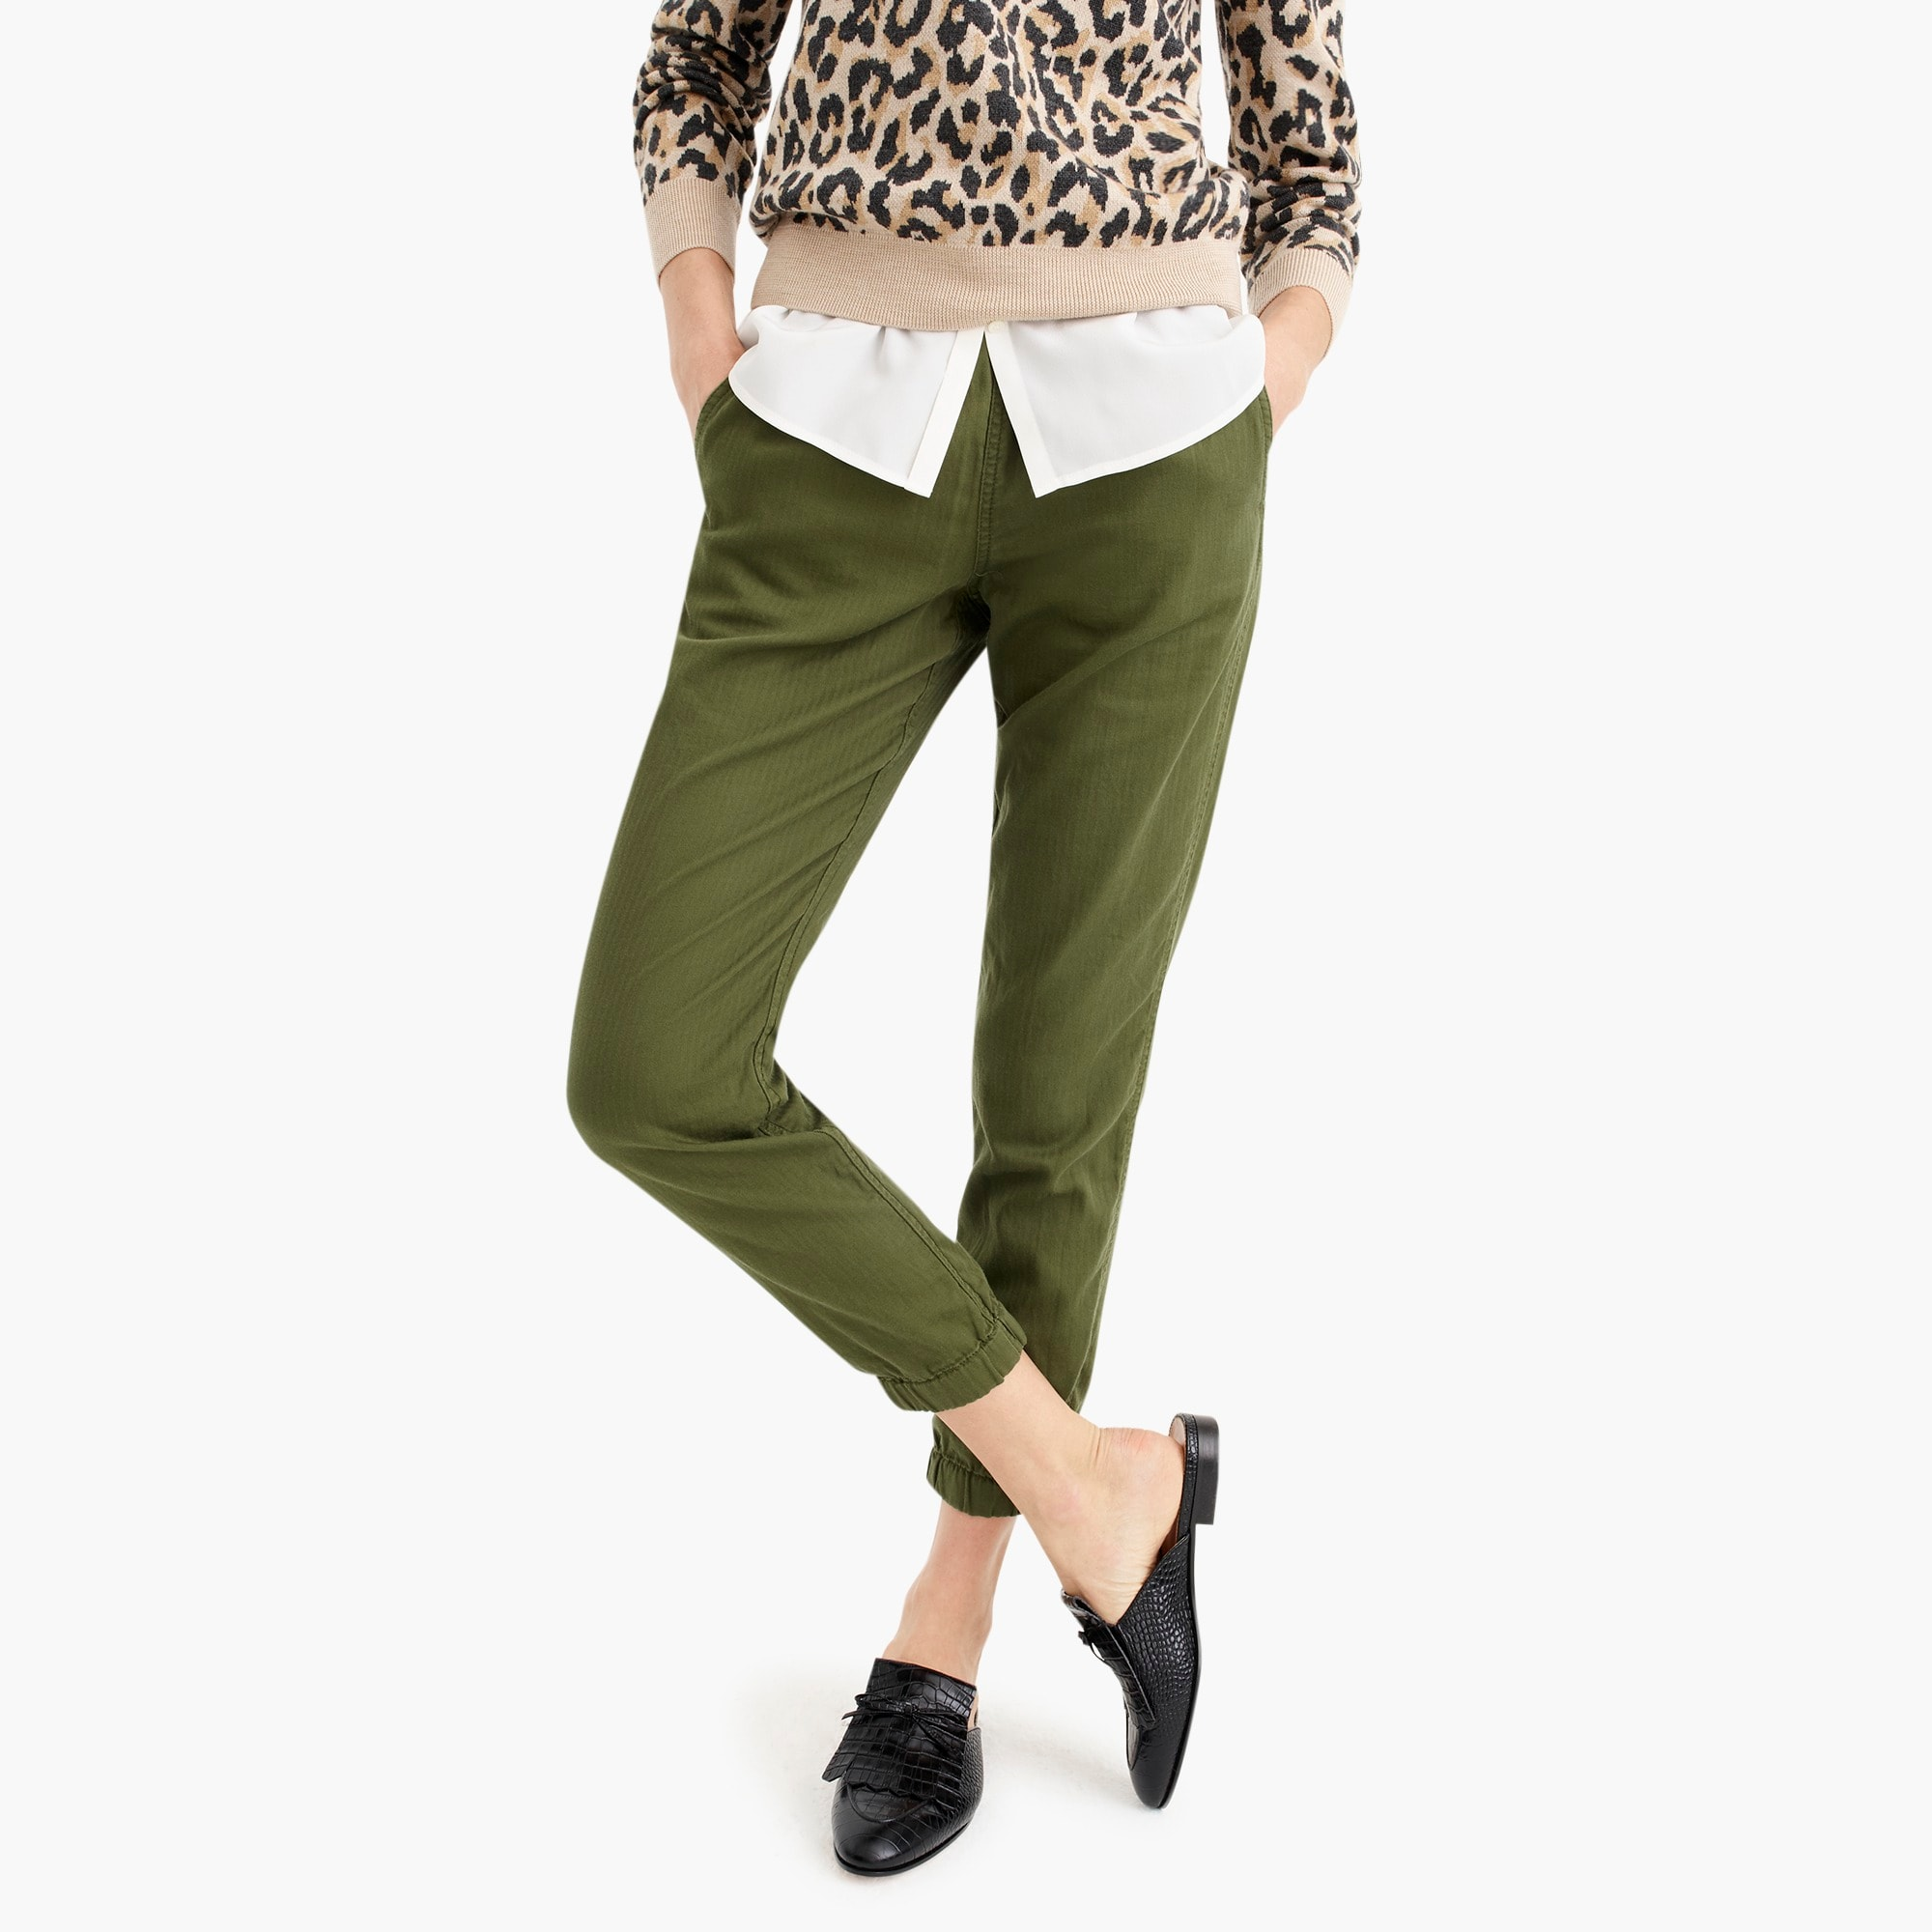 womens Tall Point Sur seaside pant in cotton twill